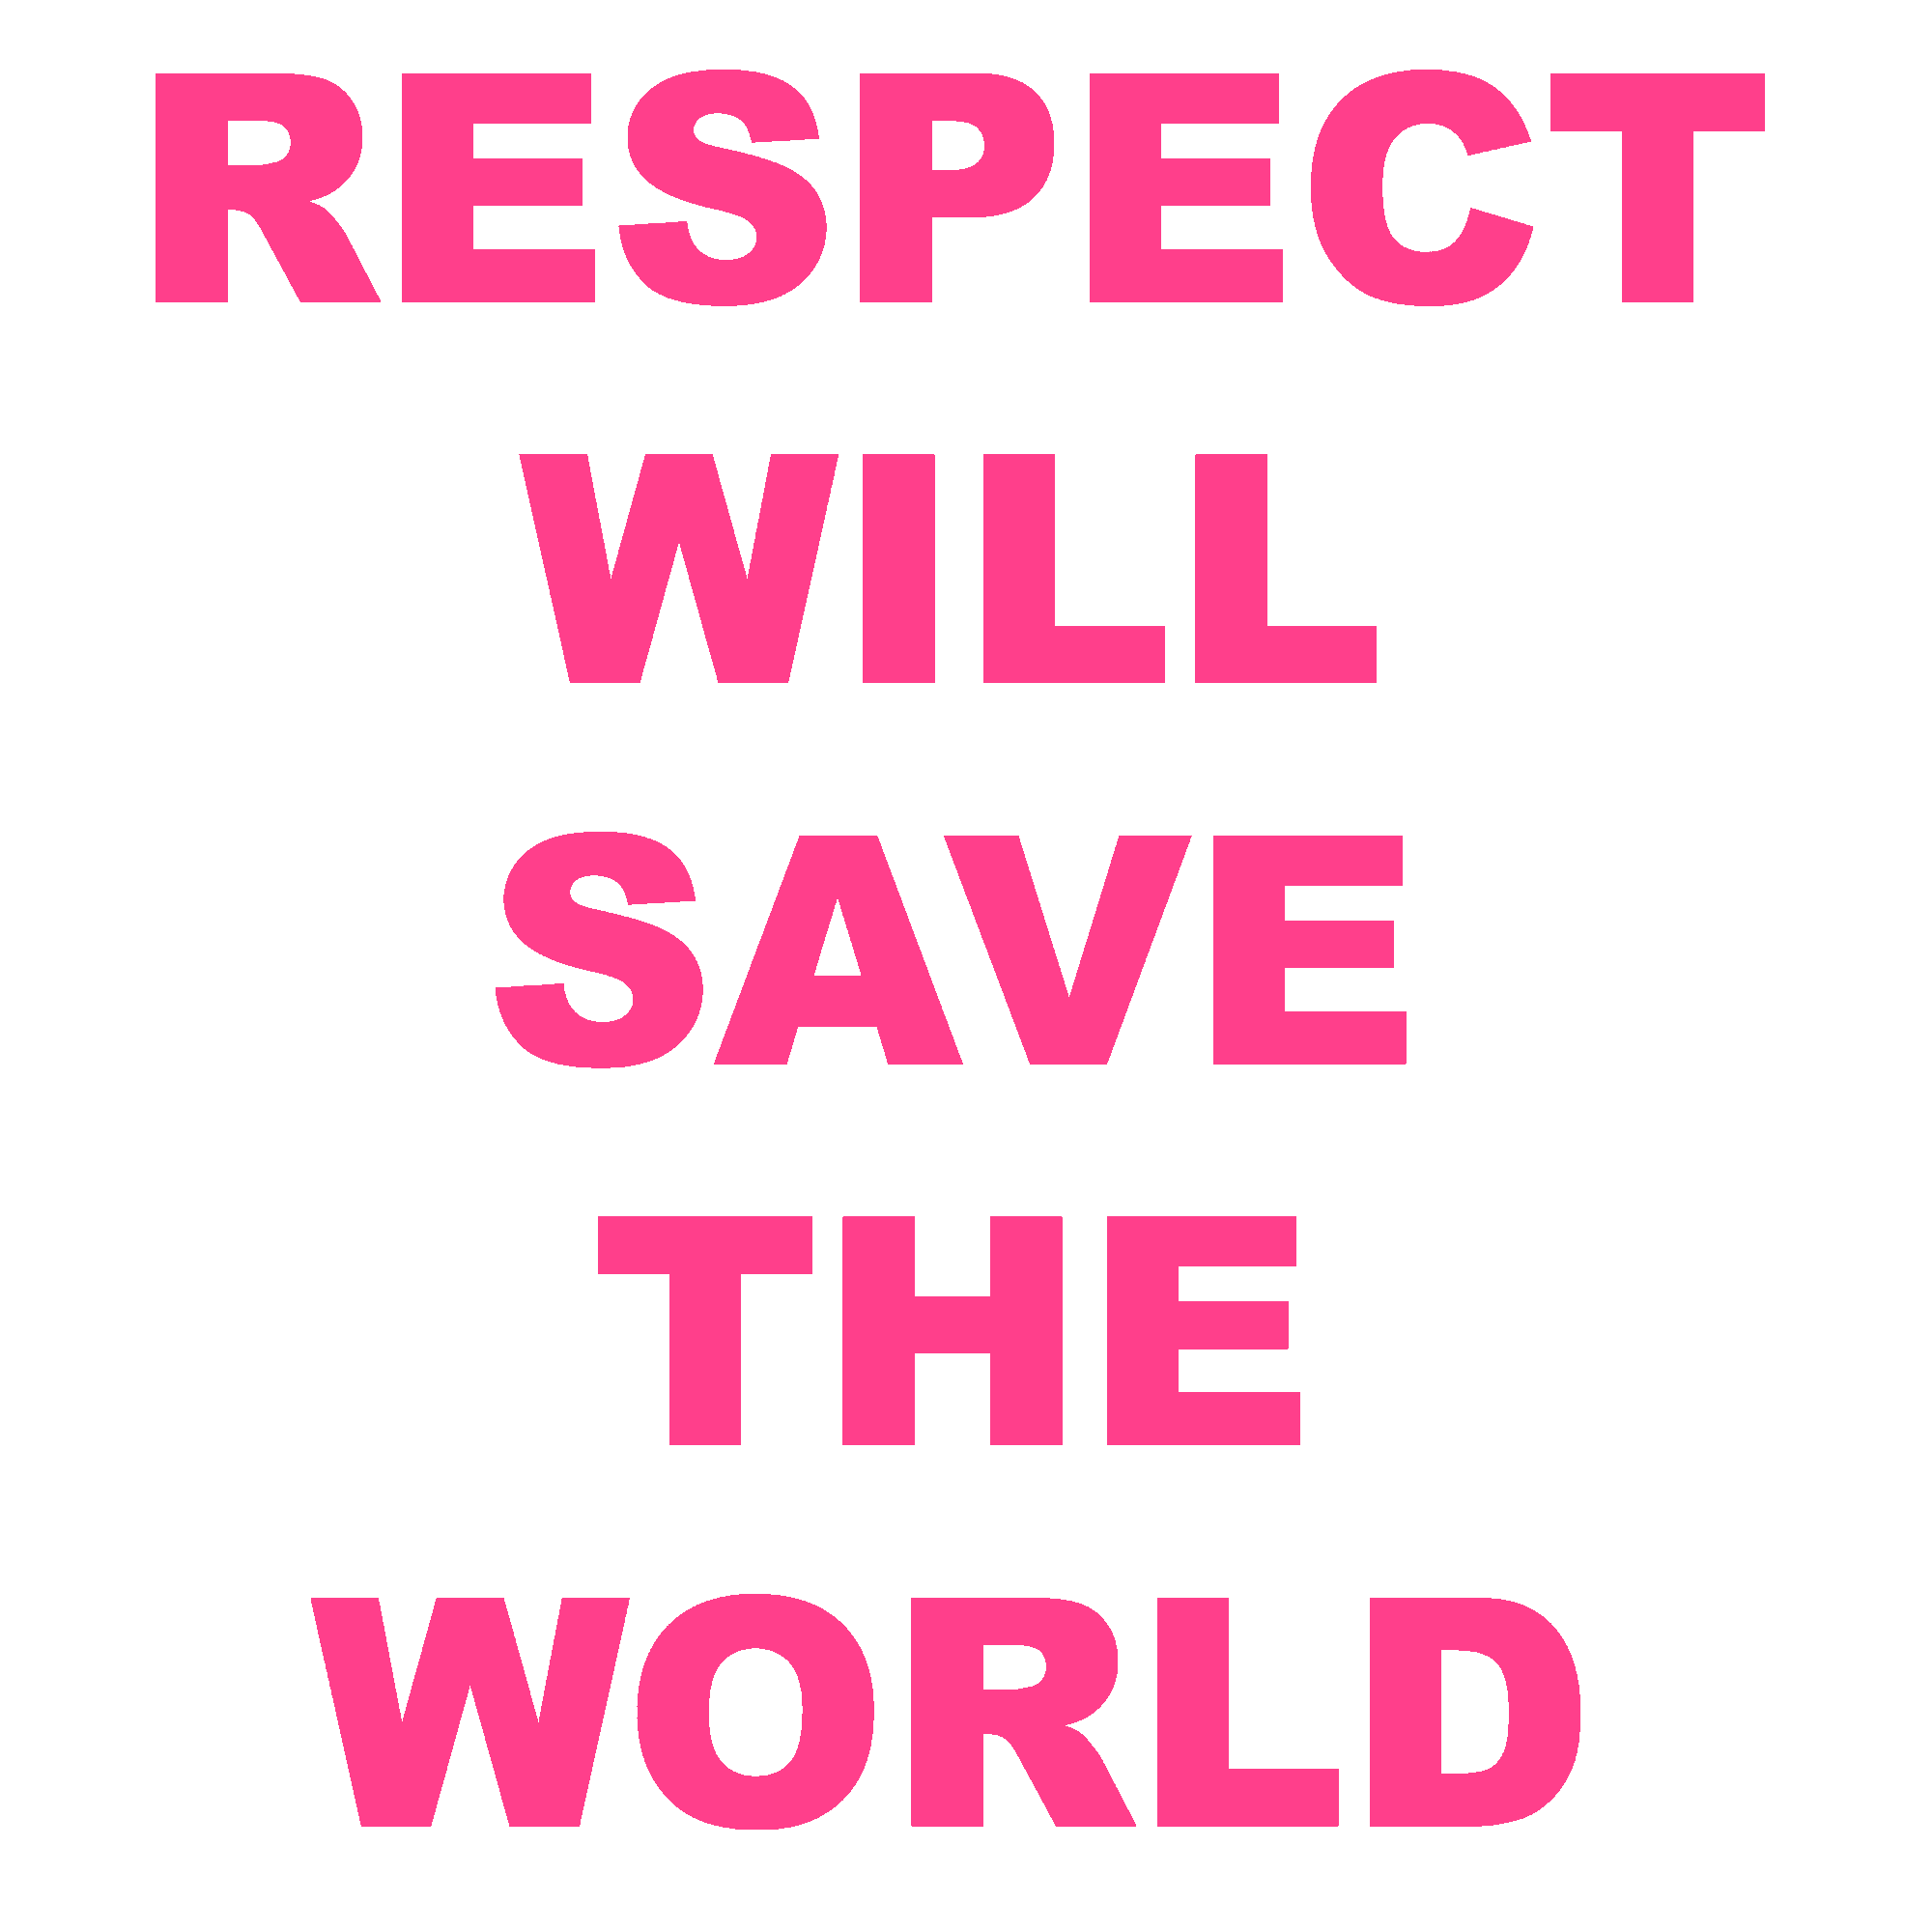 Respect Each Other: THE FUTURE OF OUR PLANET DEPENDS UPON IT